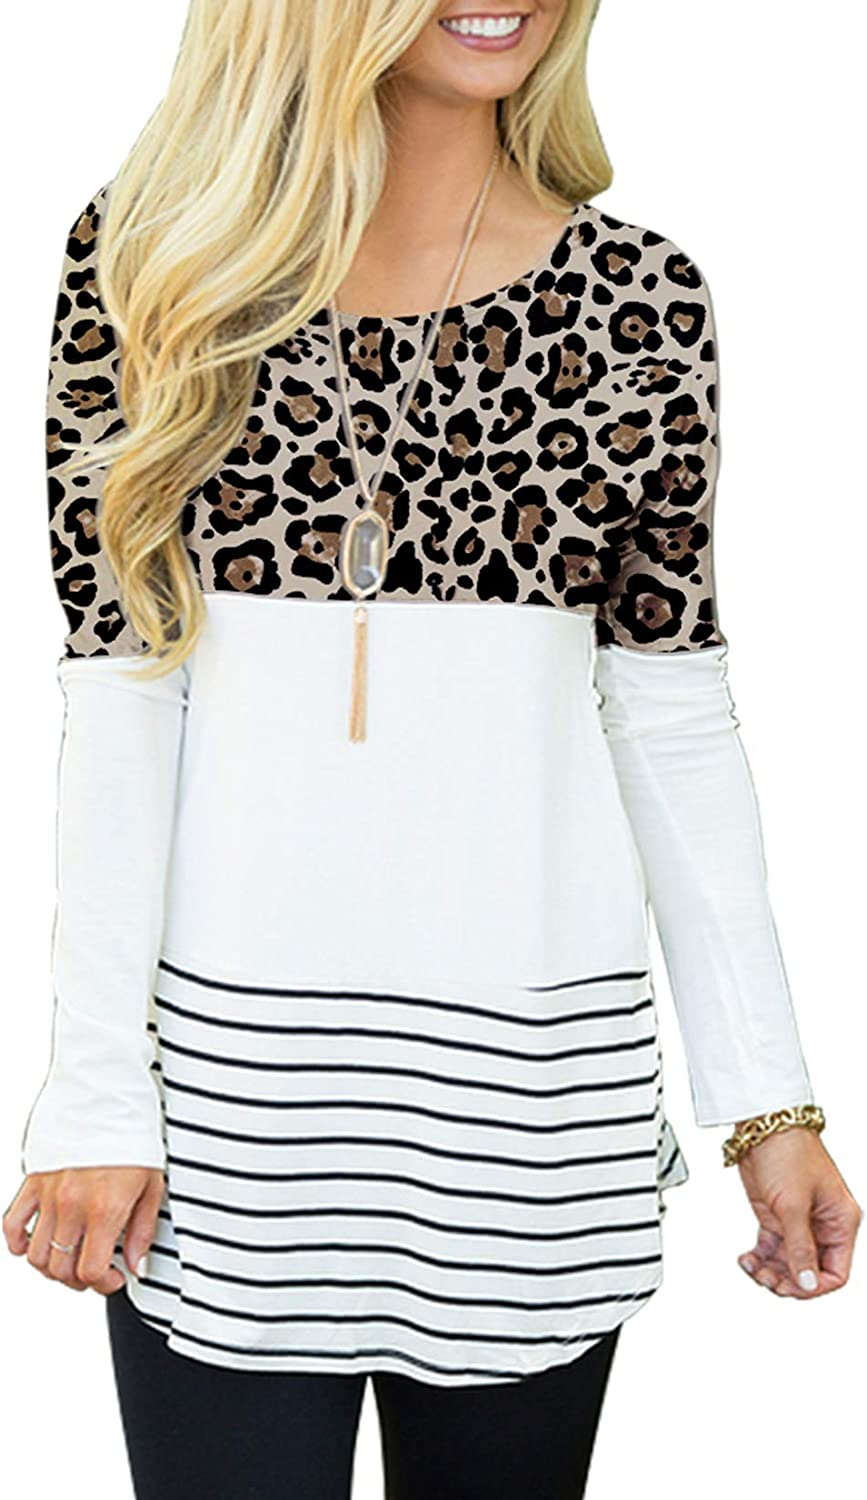 Sherosa Women's Casual Max 74% OFF Color Block Lace Inset Shir Long Sleeve T Topics on TV